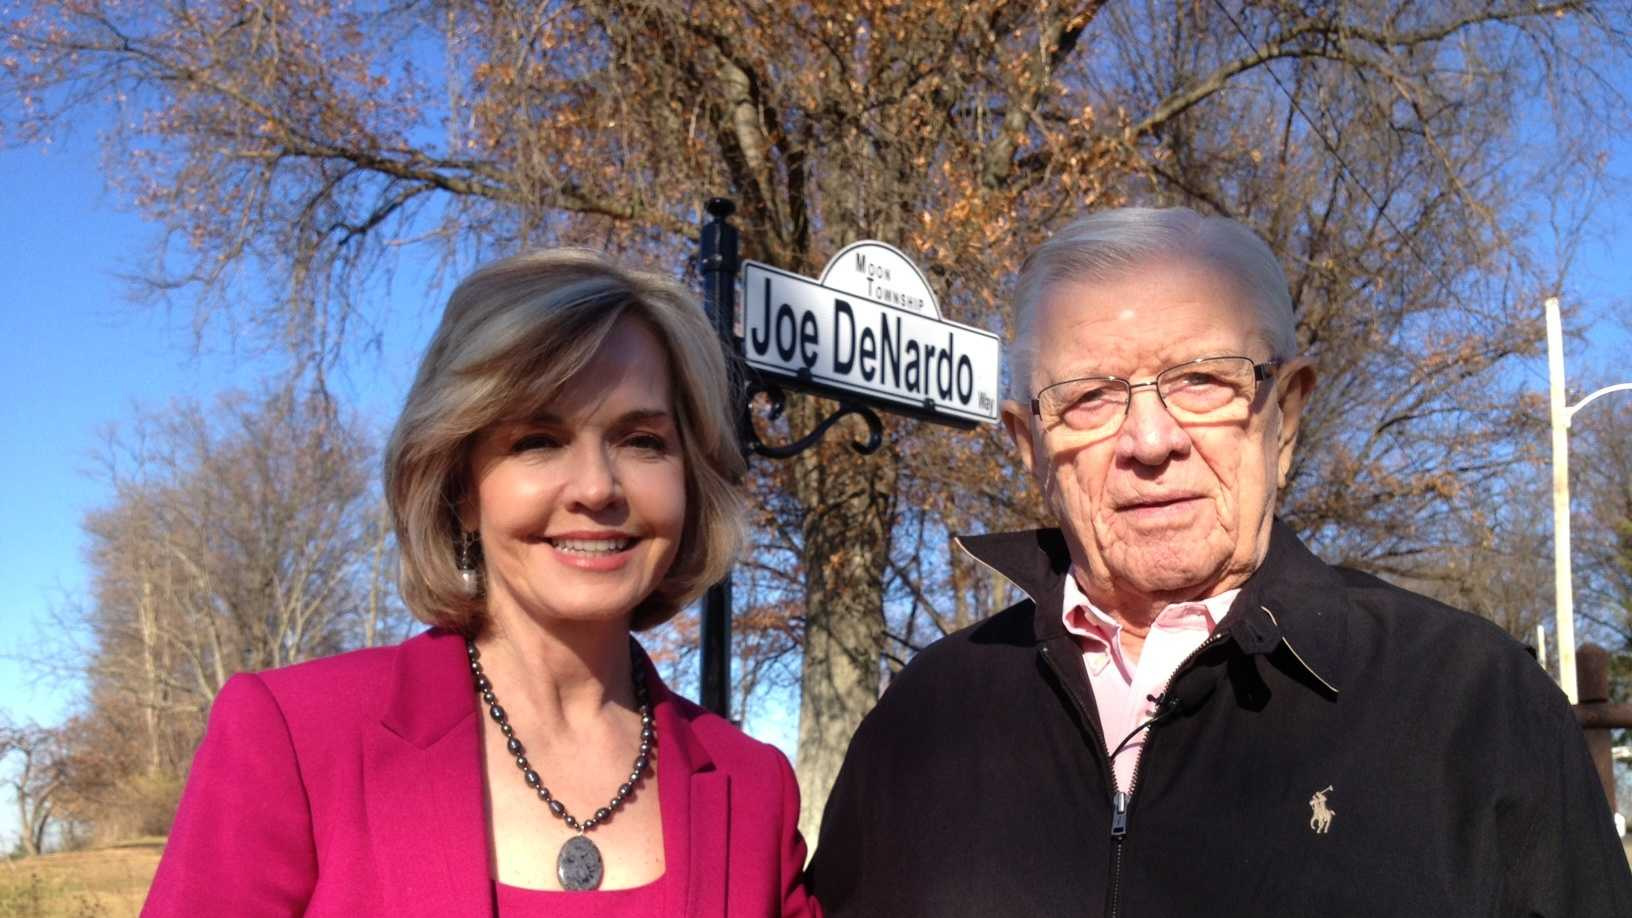 Joe DeNardo Way in Moon Township is named for the former WTAE chief meteorologist.